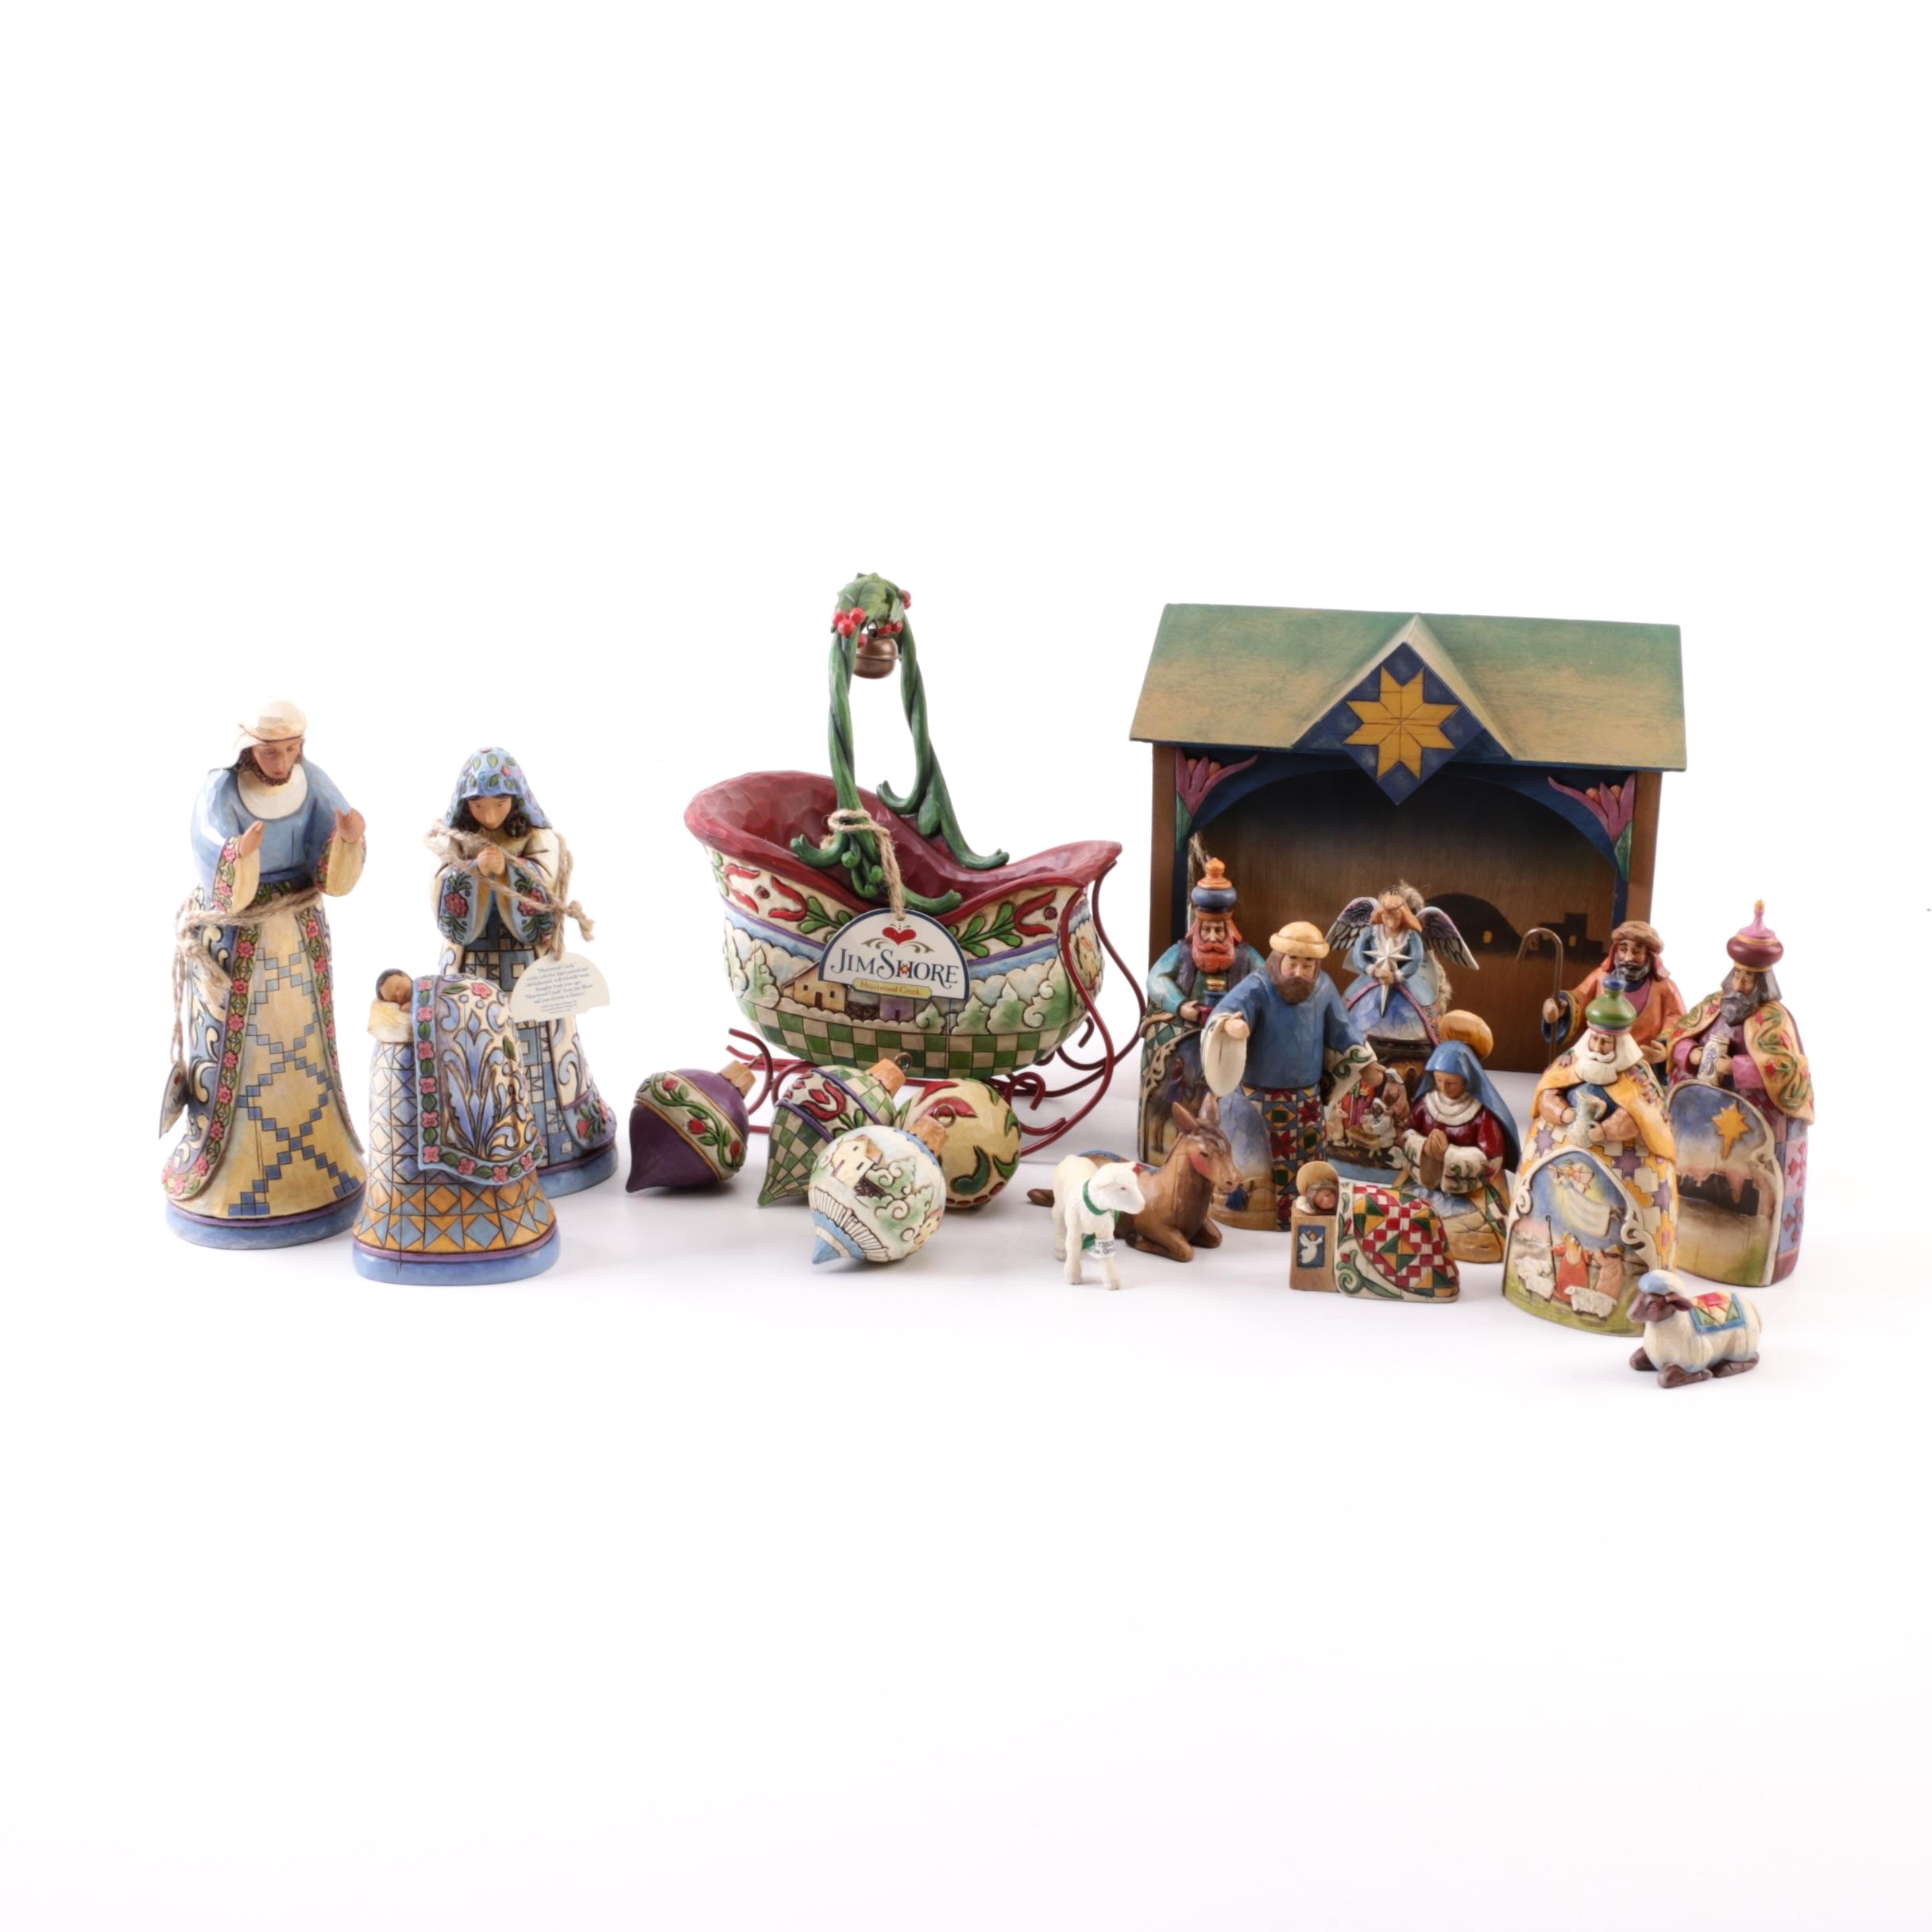 JIm Shore Holiday Figurines Featuring the Nativity Scene